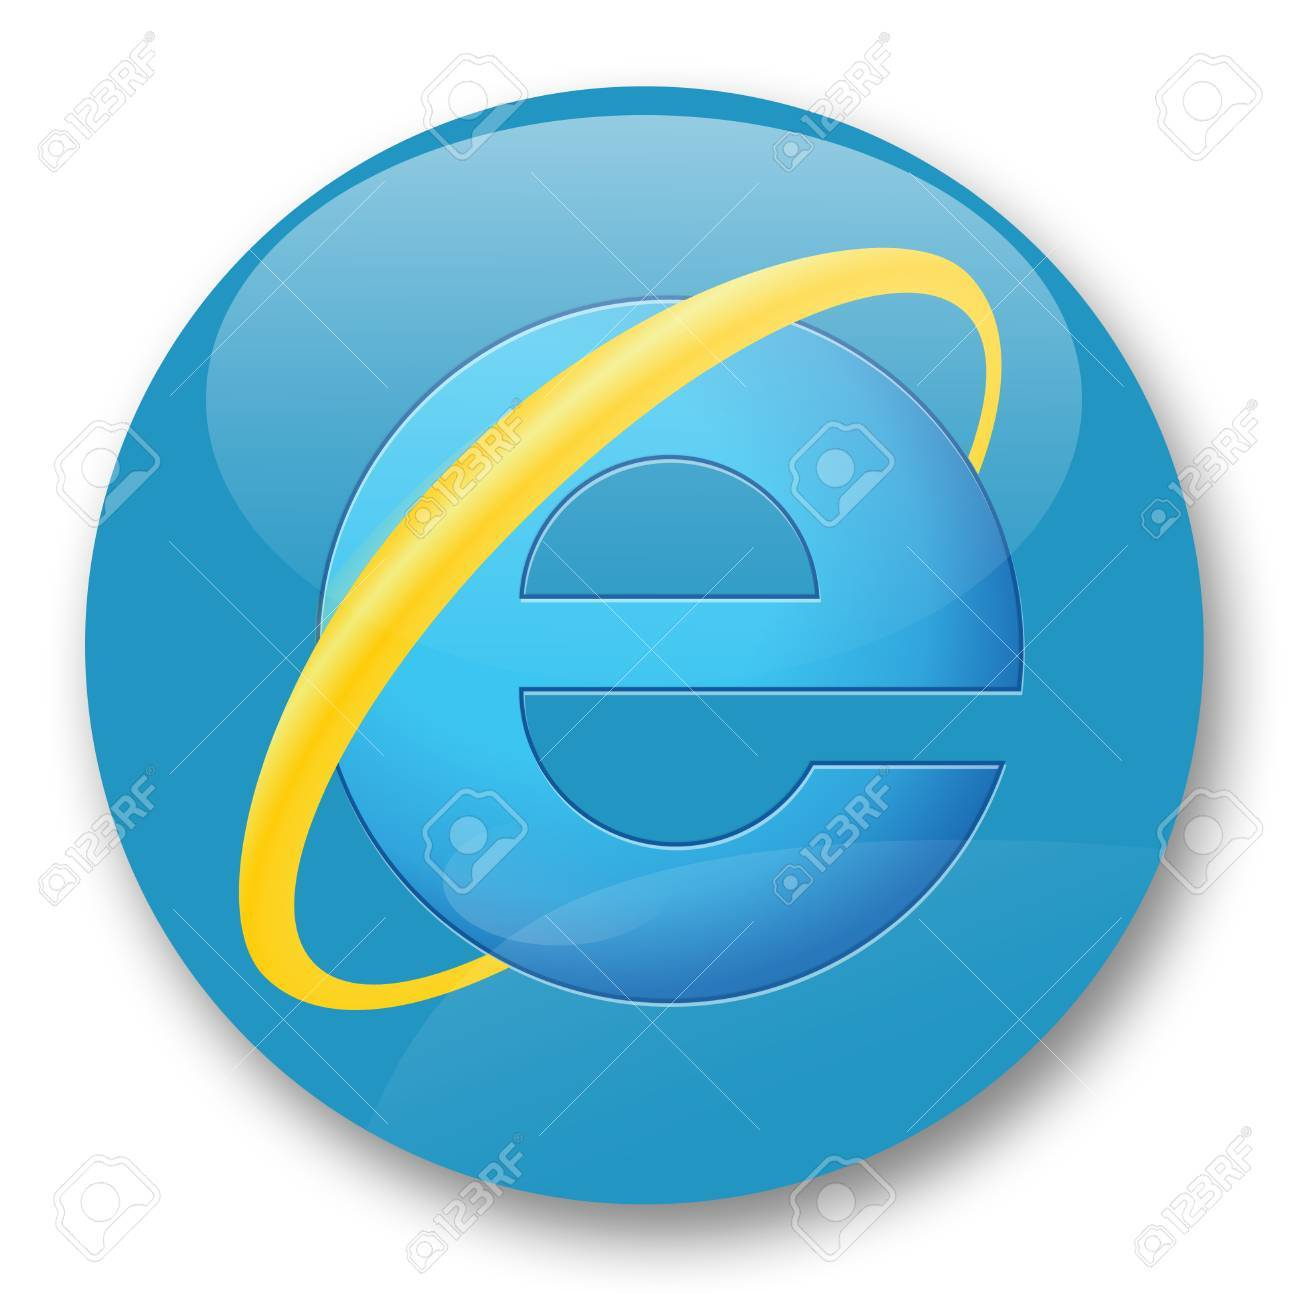 Internet Explorer Web Browser Stock Photo Picture And Royalty Free